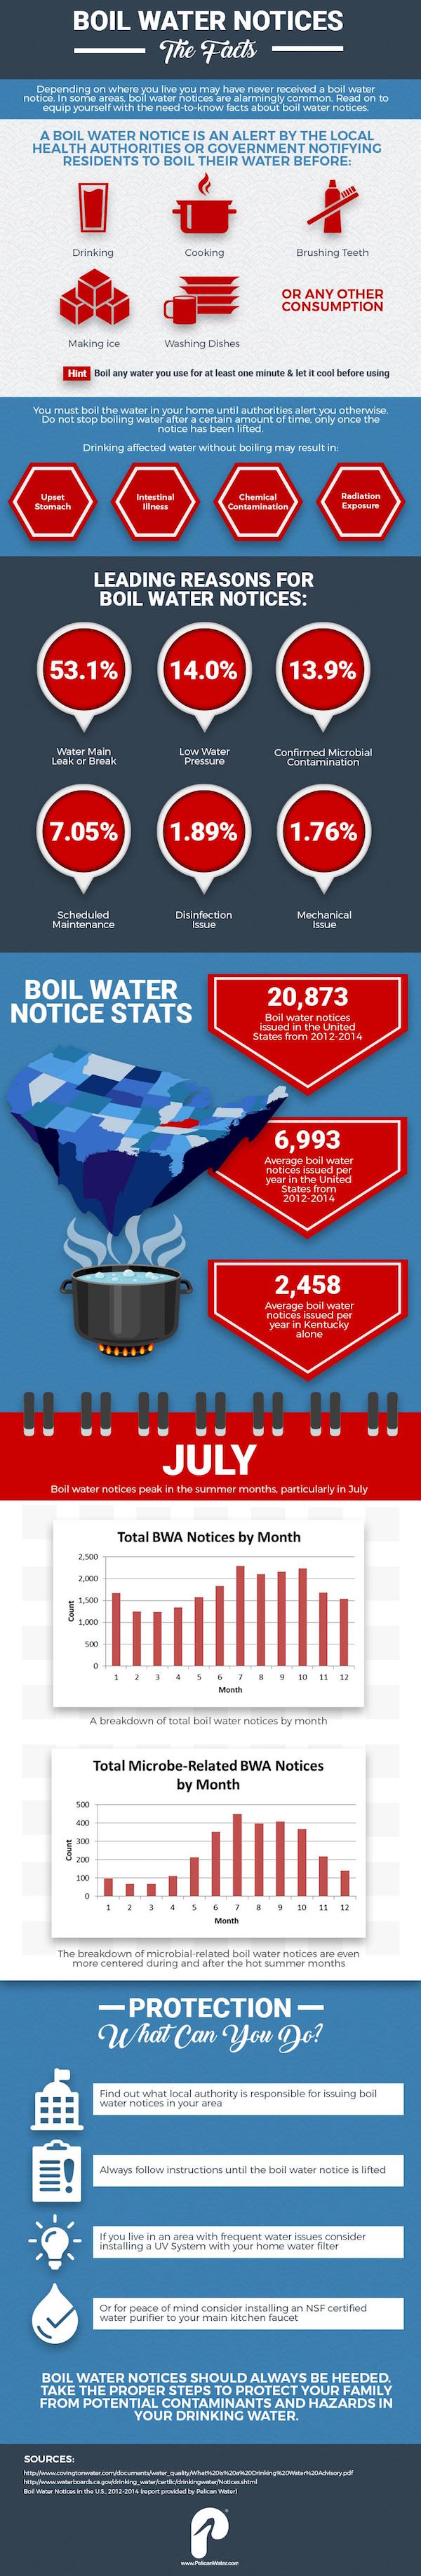 boil_water_notices_infographic